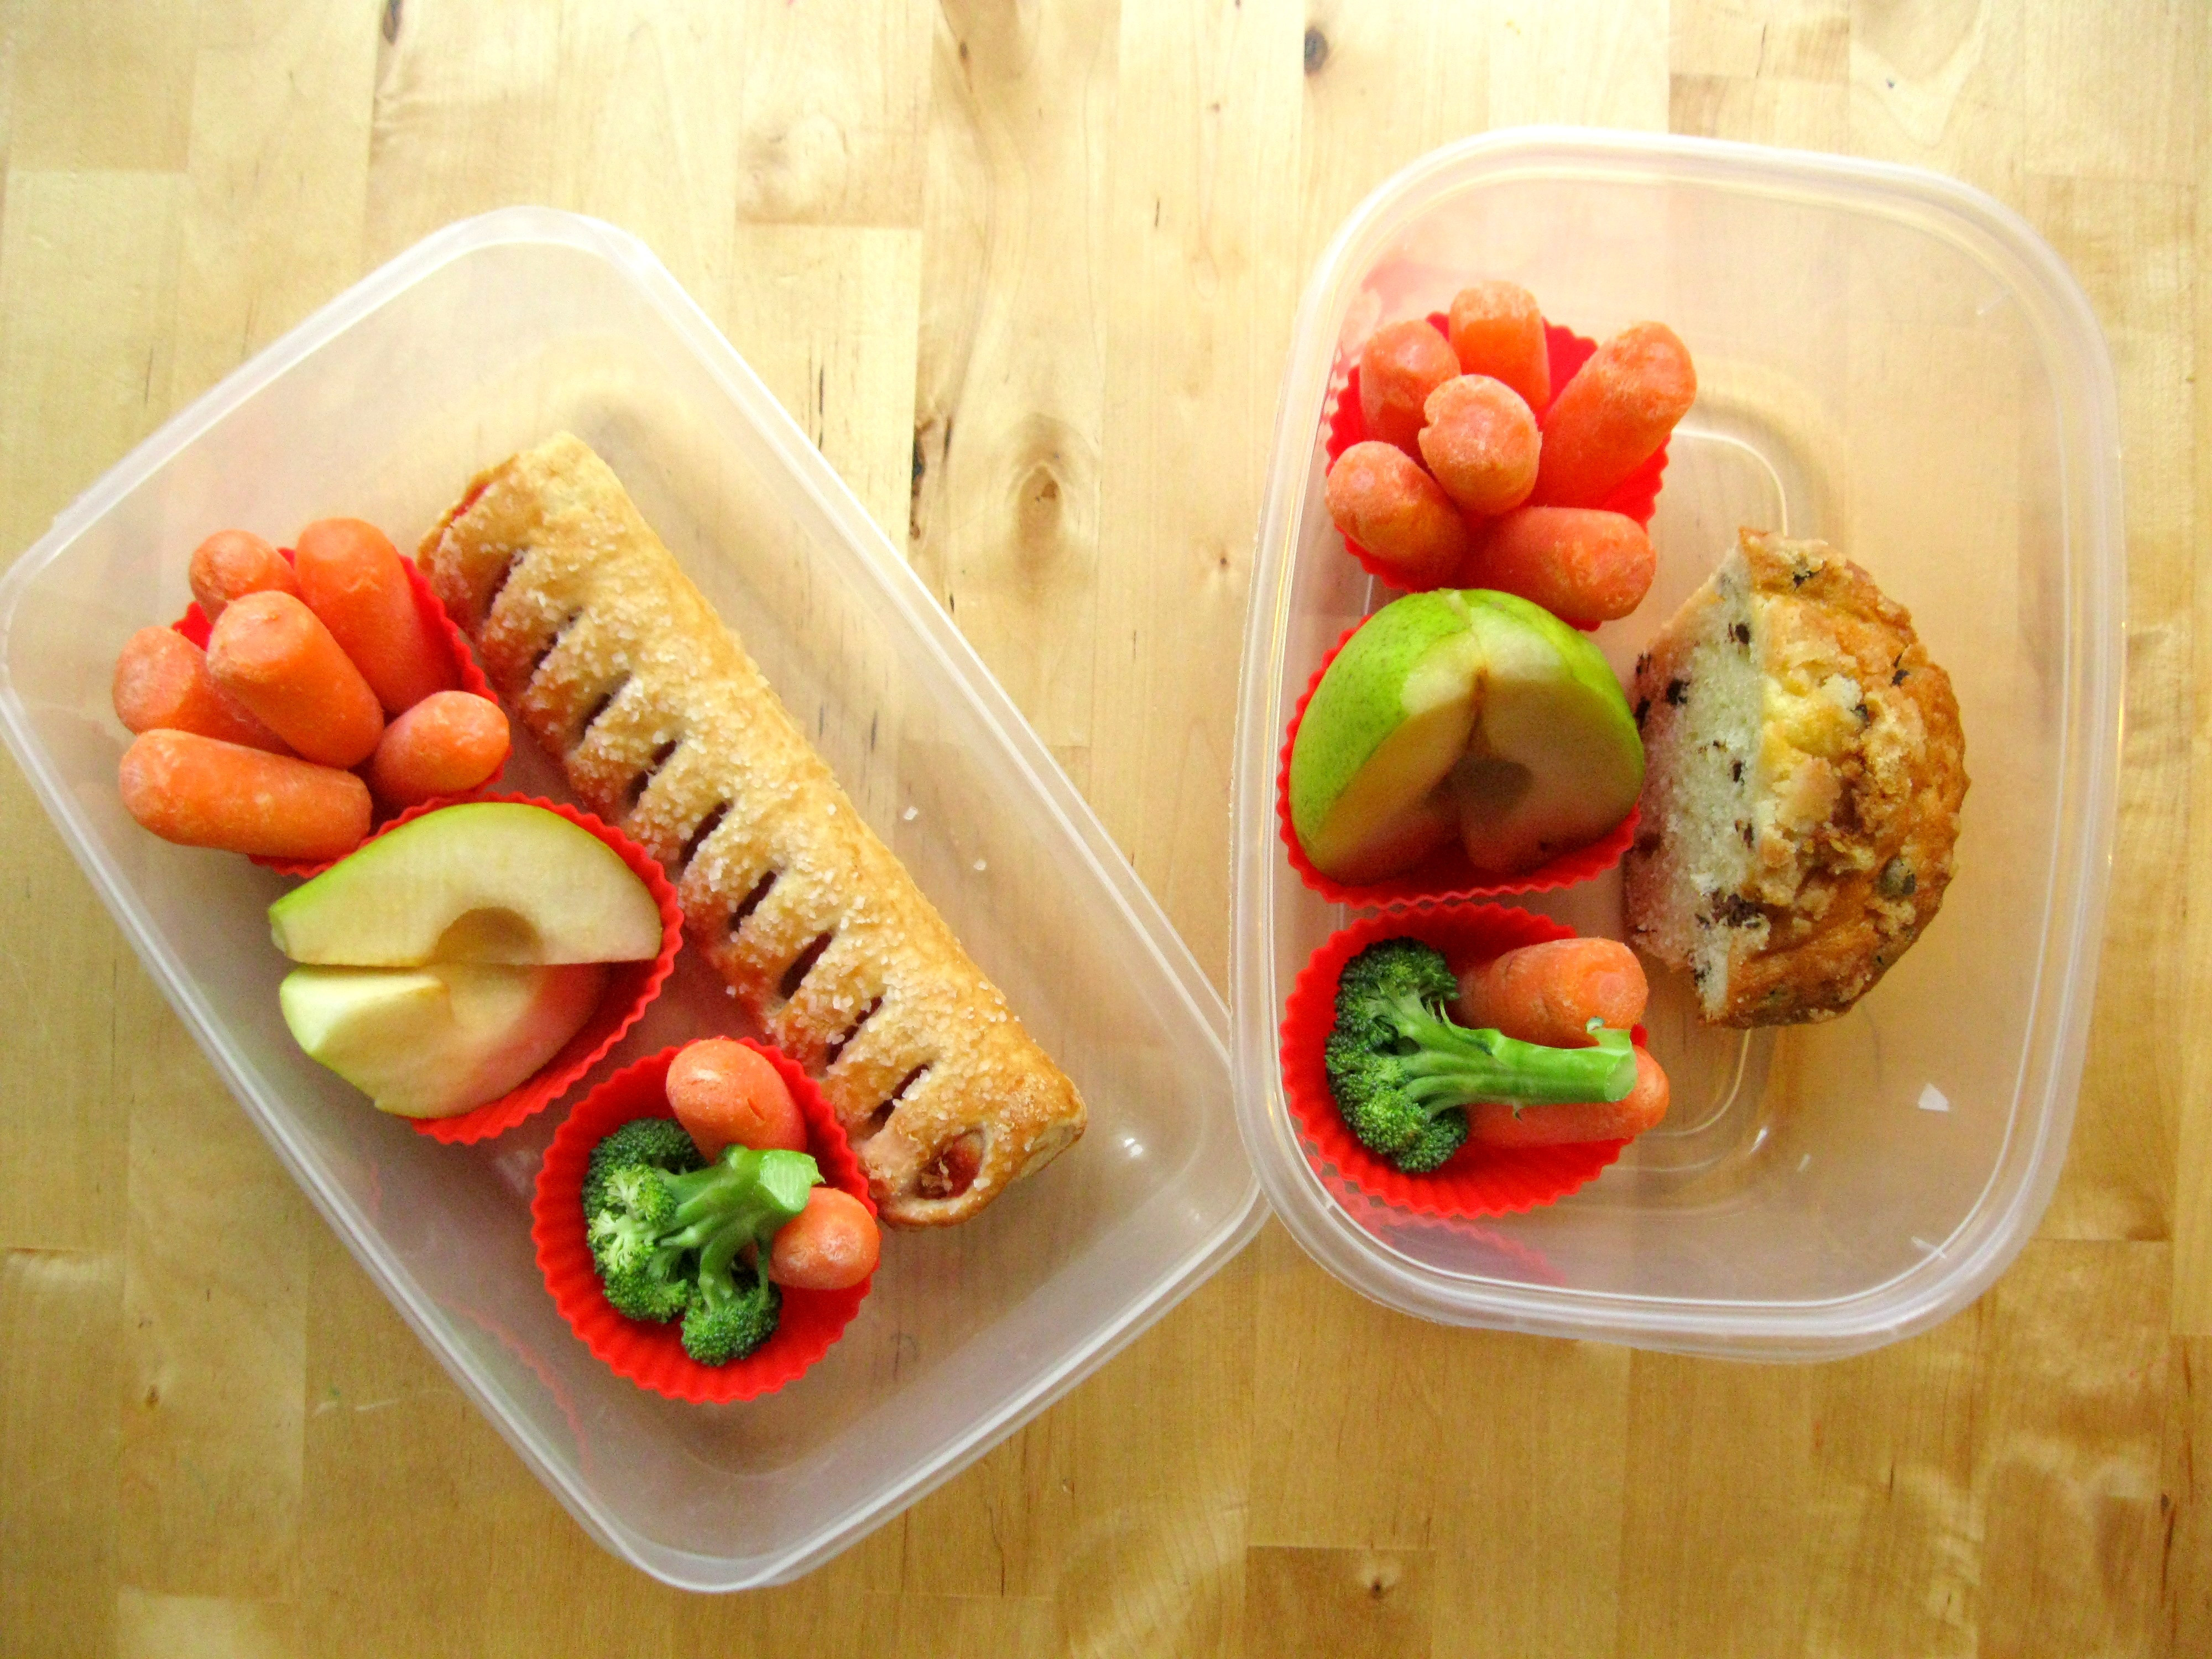 Healthy Kid Snacks  In the Kitchen Self Serving Snack Box Tutorial and